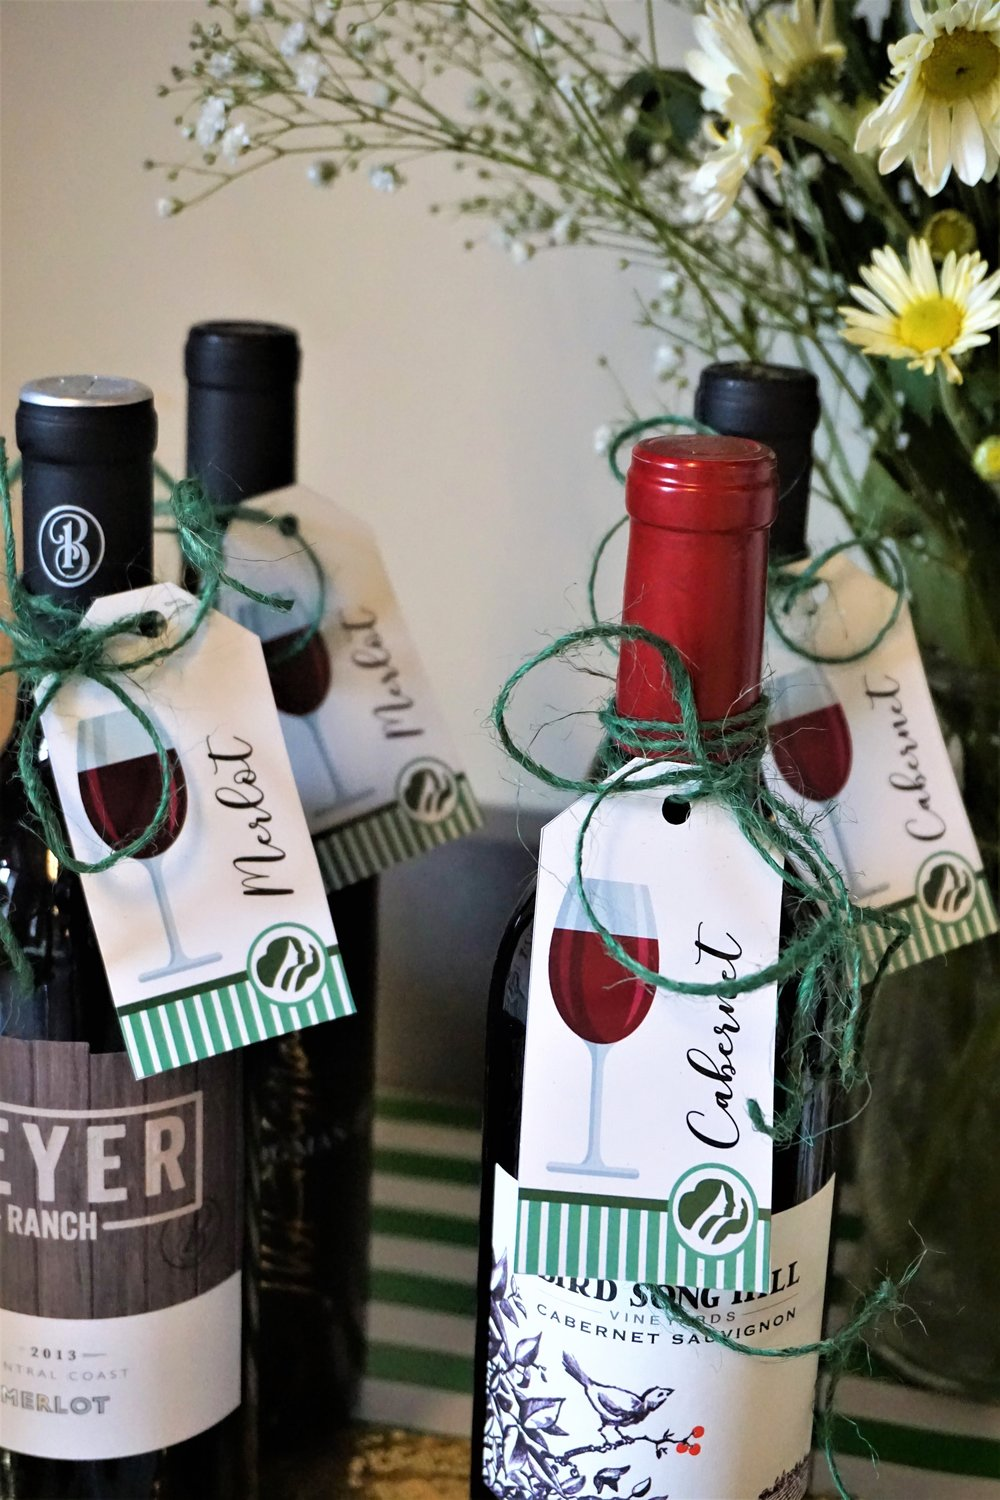 Girl Scout cookie and wine pairing wine tags.